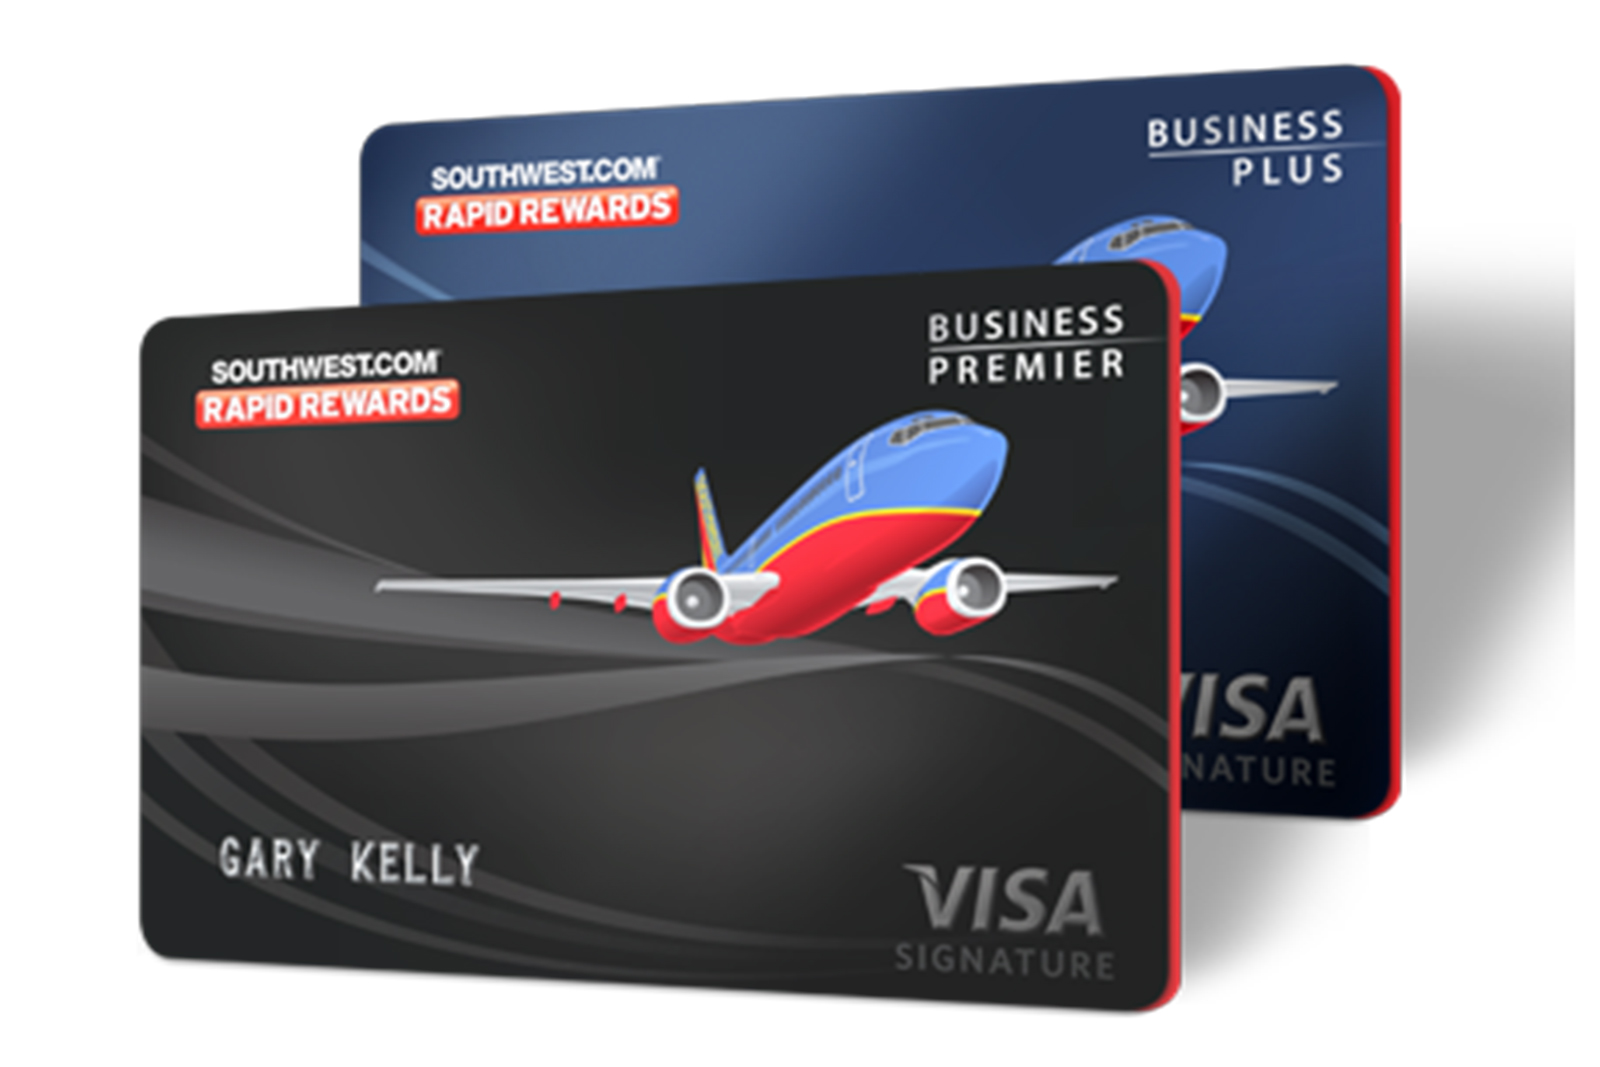 Southwest (LUV) Airlines May Replace Chase for Credit Cards Program ...